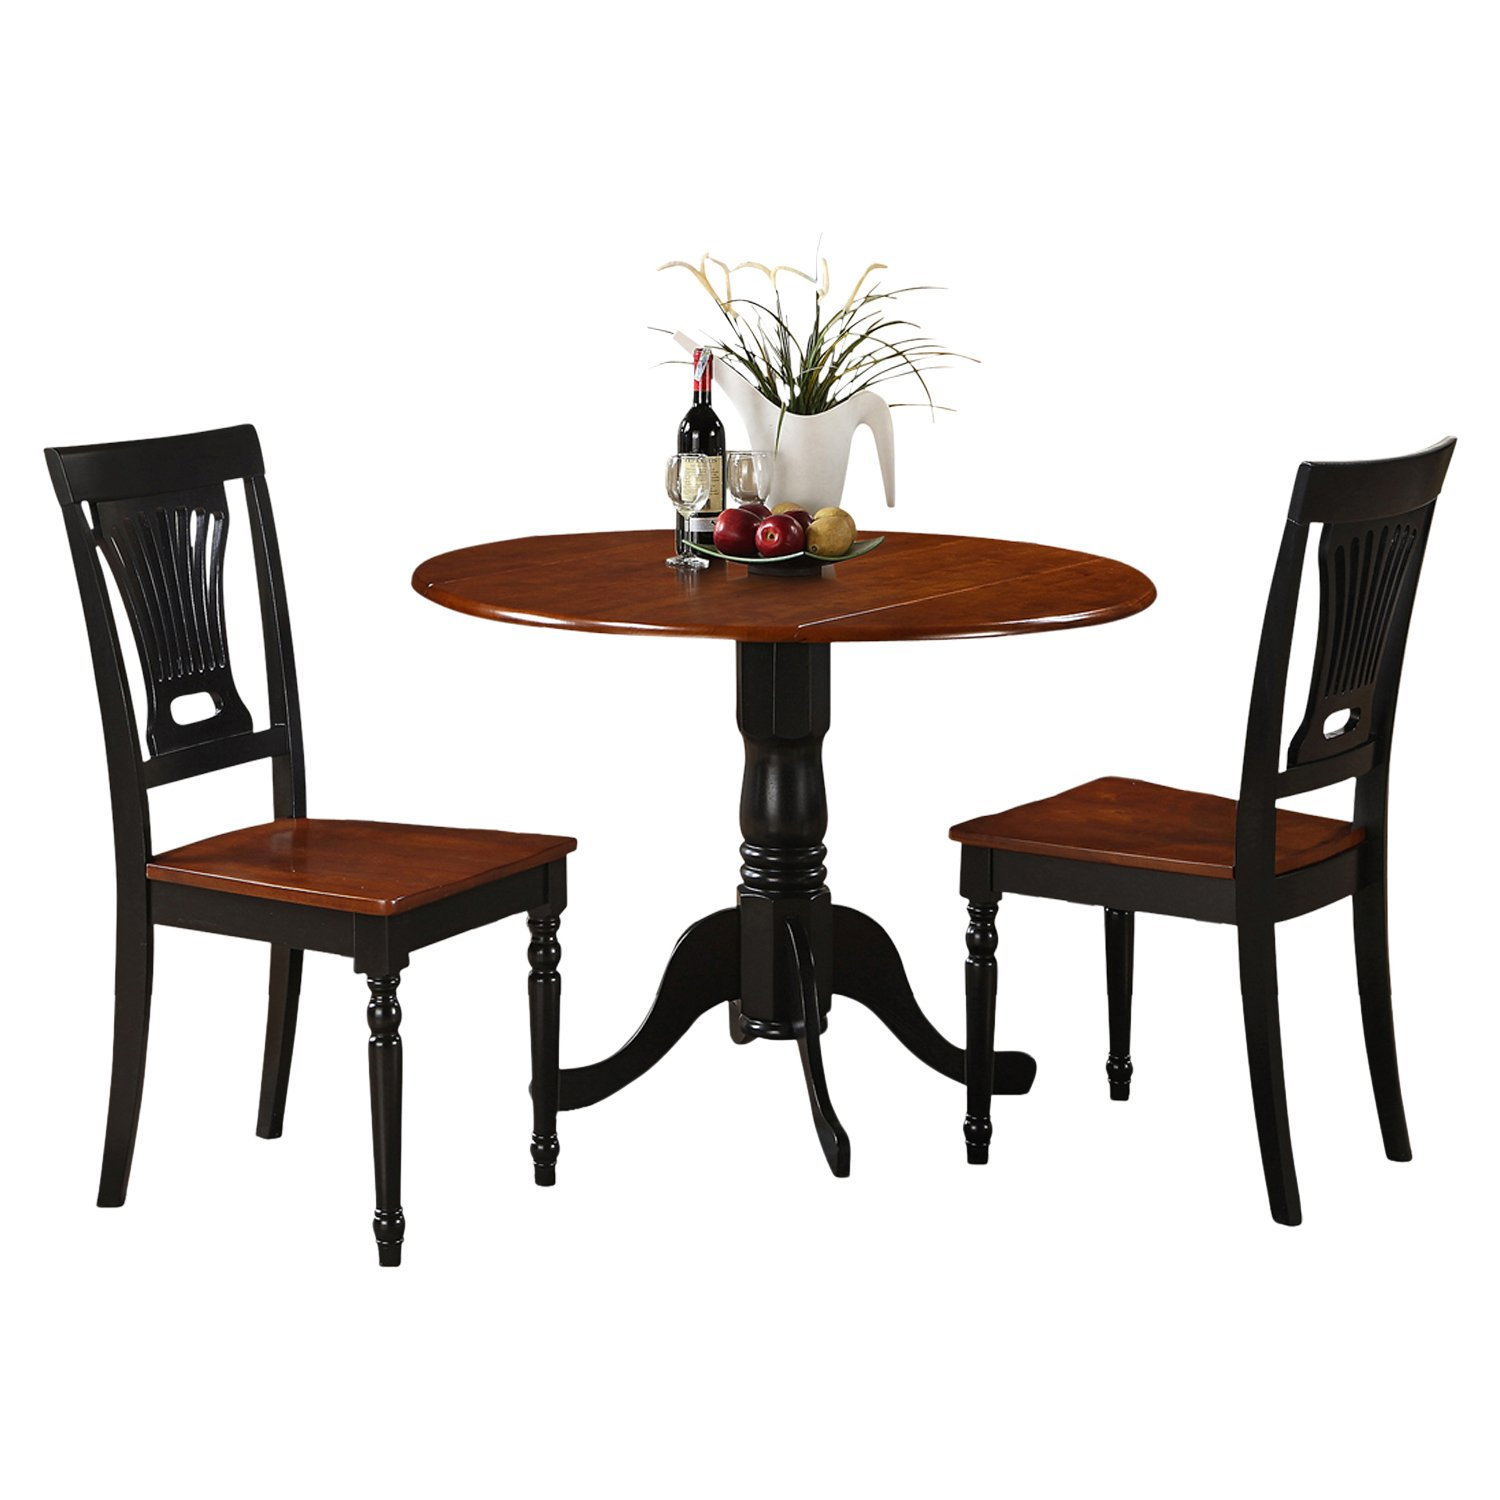 East West Furniture DLPL3-BCH-W 3-Piece Kitchen Table and Chairs Set, Black/Cherry Finish